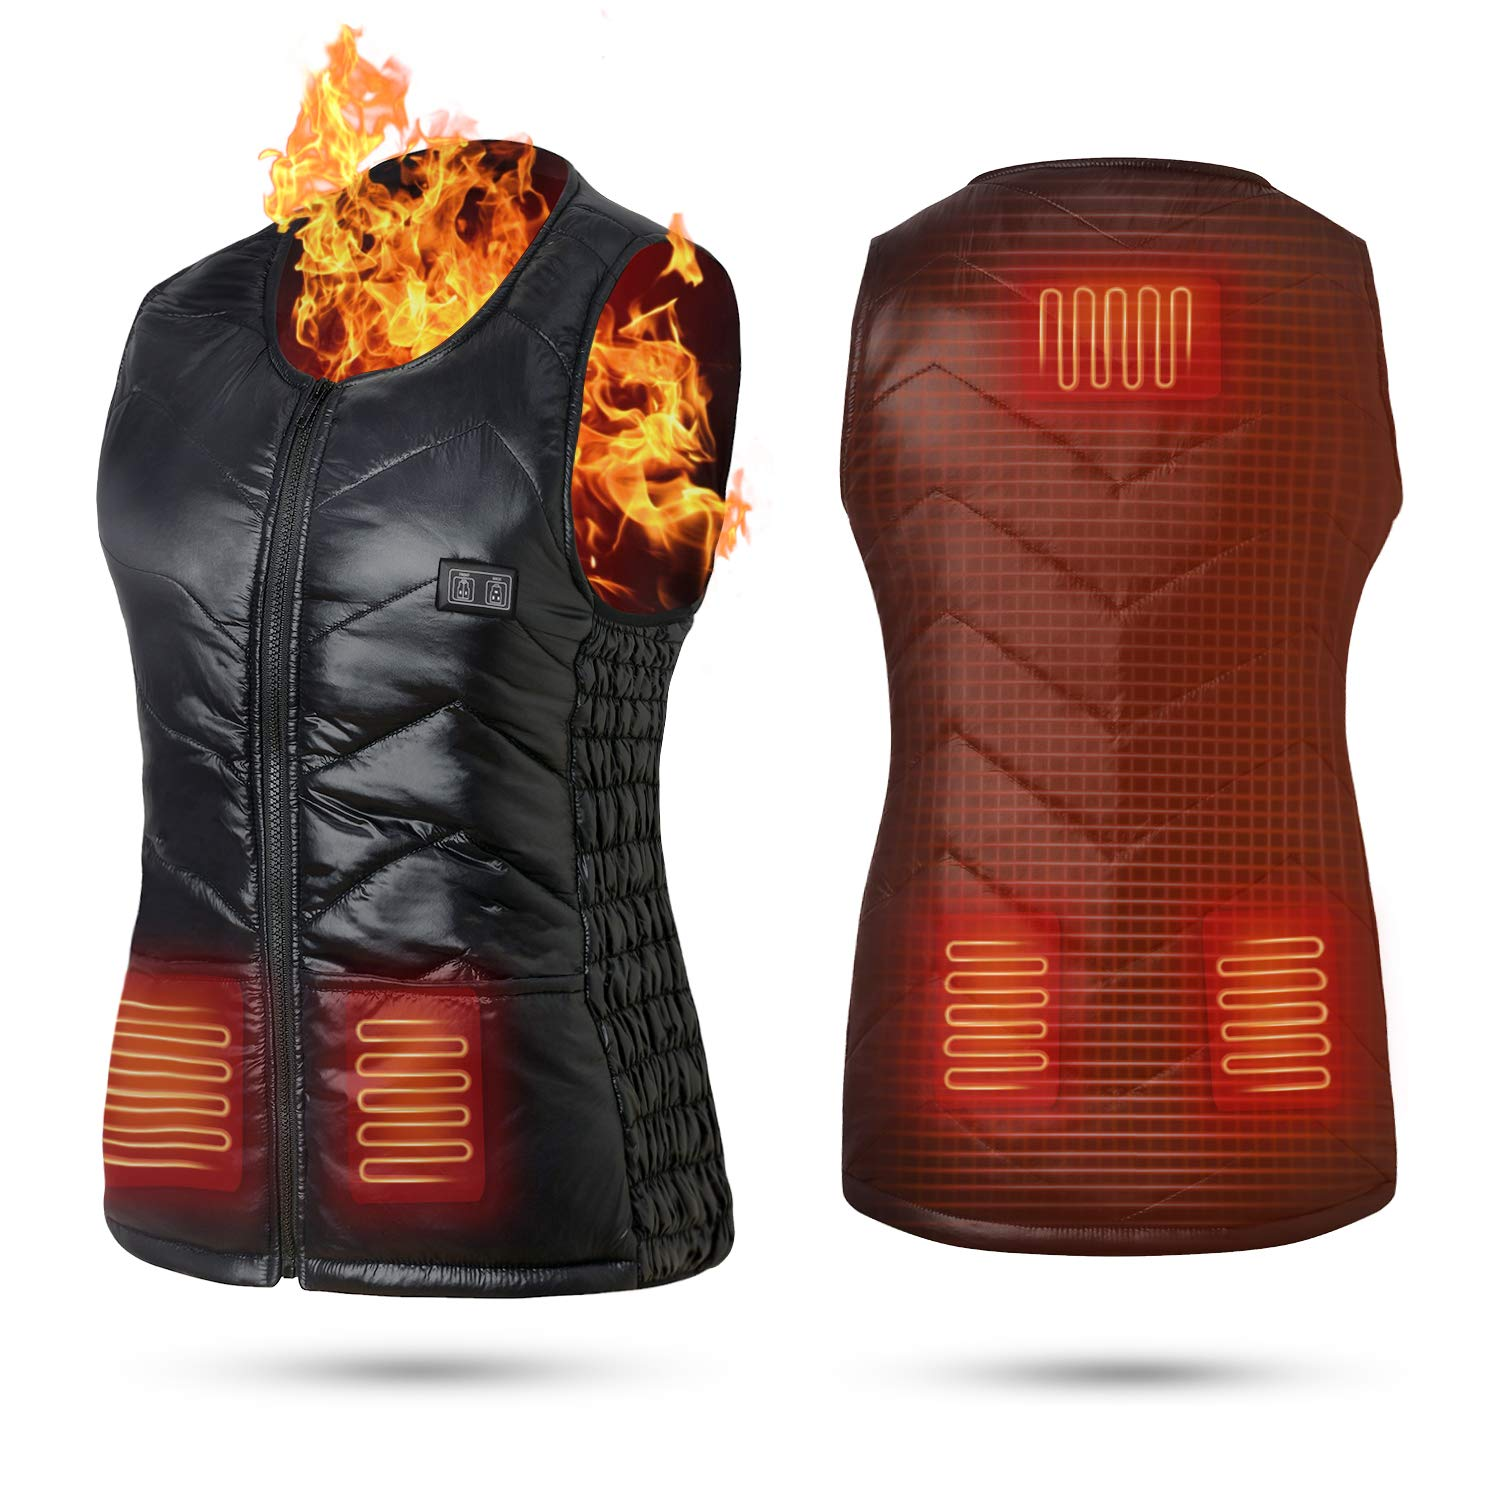 Keymao Heated Vest Electric Vest USB Charging Heated Vest for Men Women Washable Heating Vest Intelligent Clothes Warm Winter